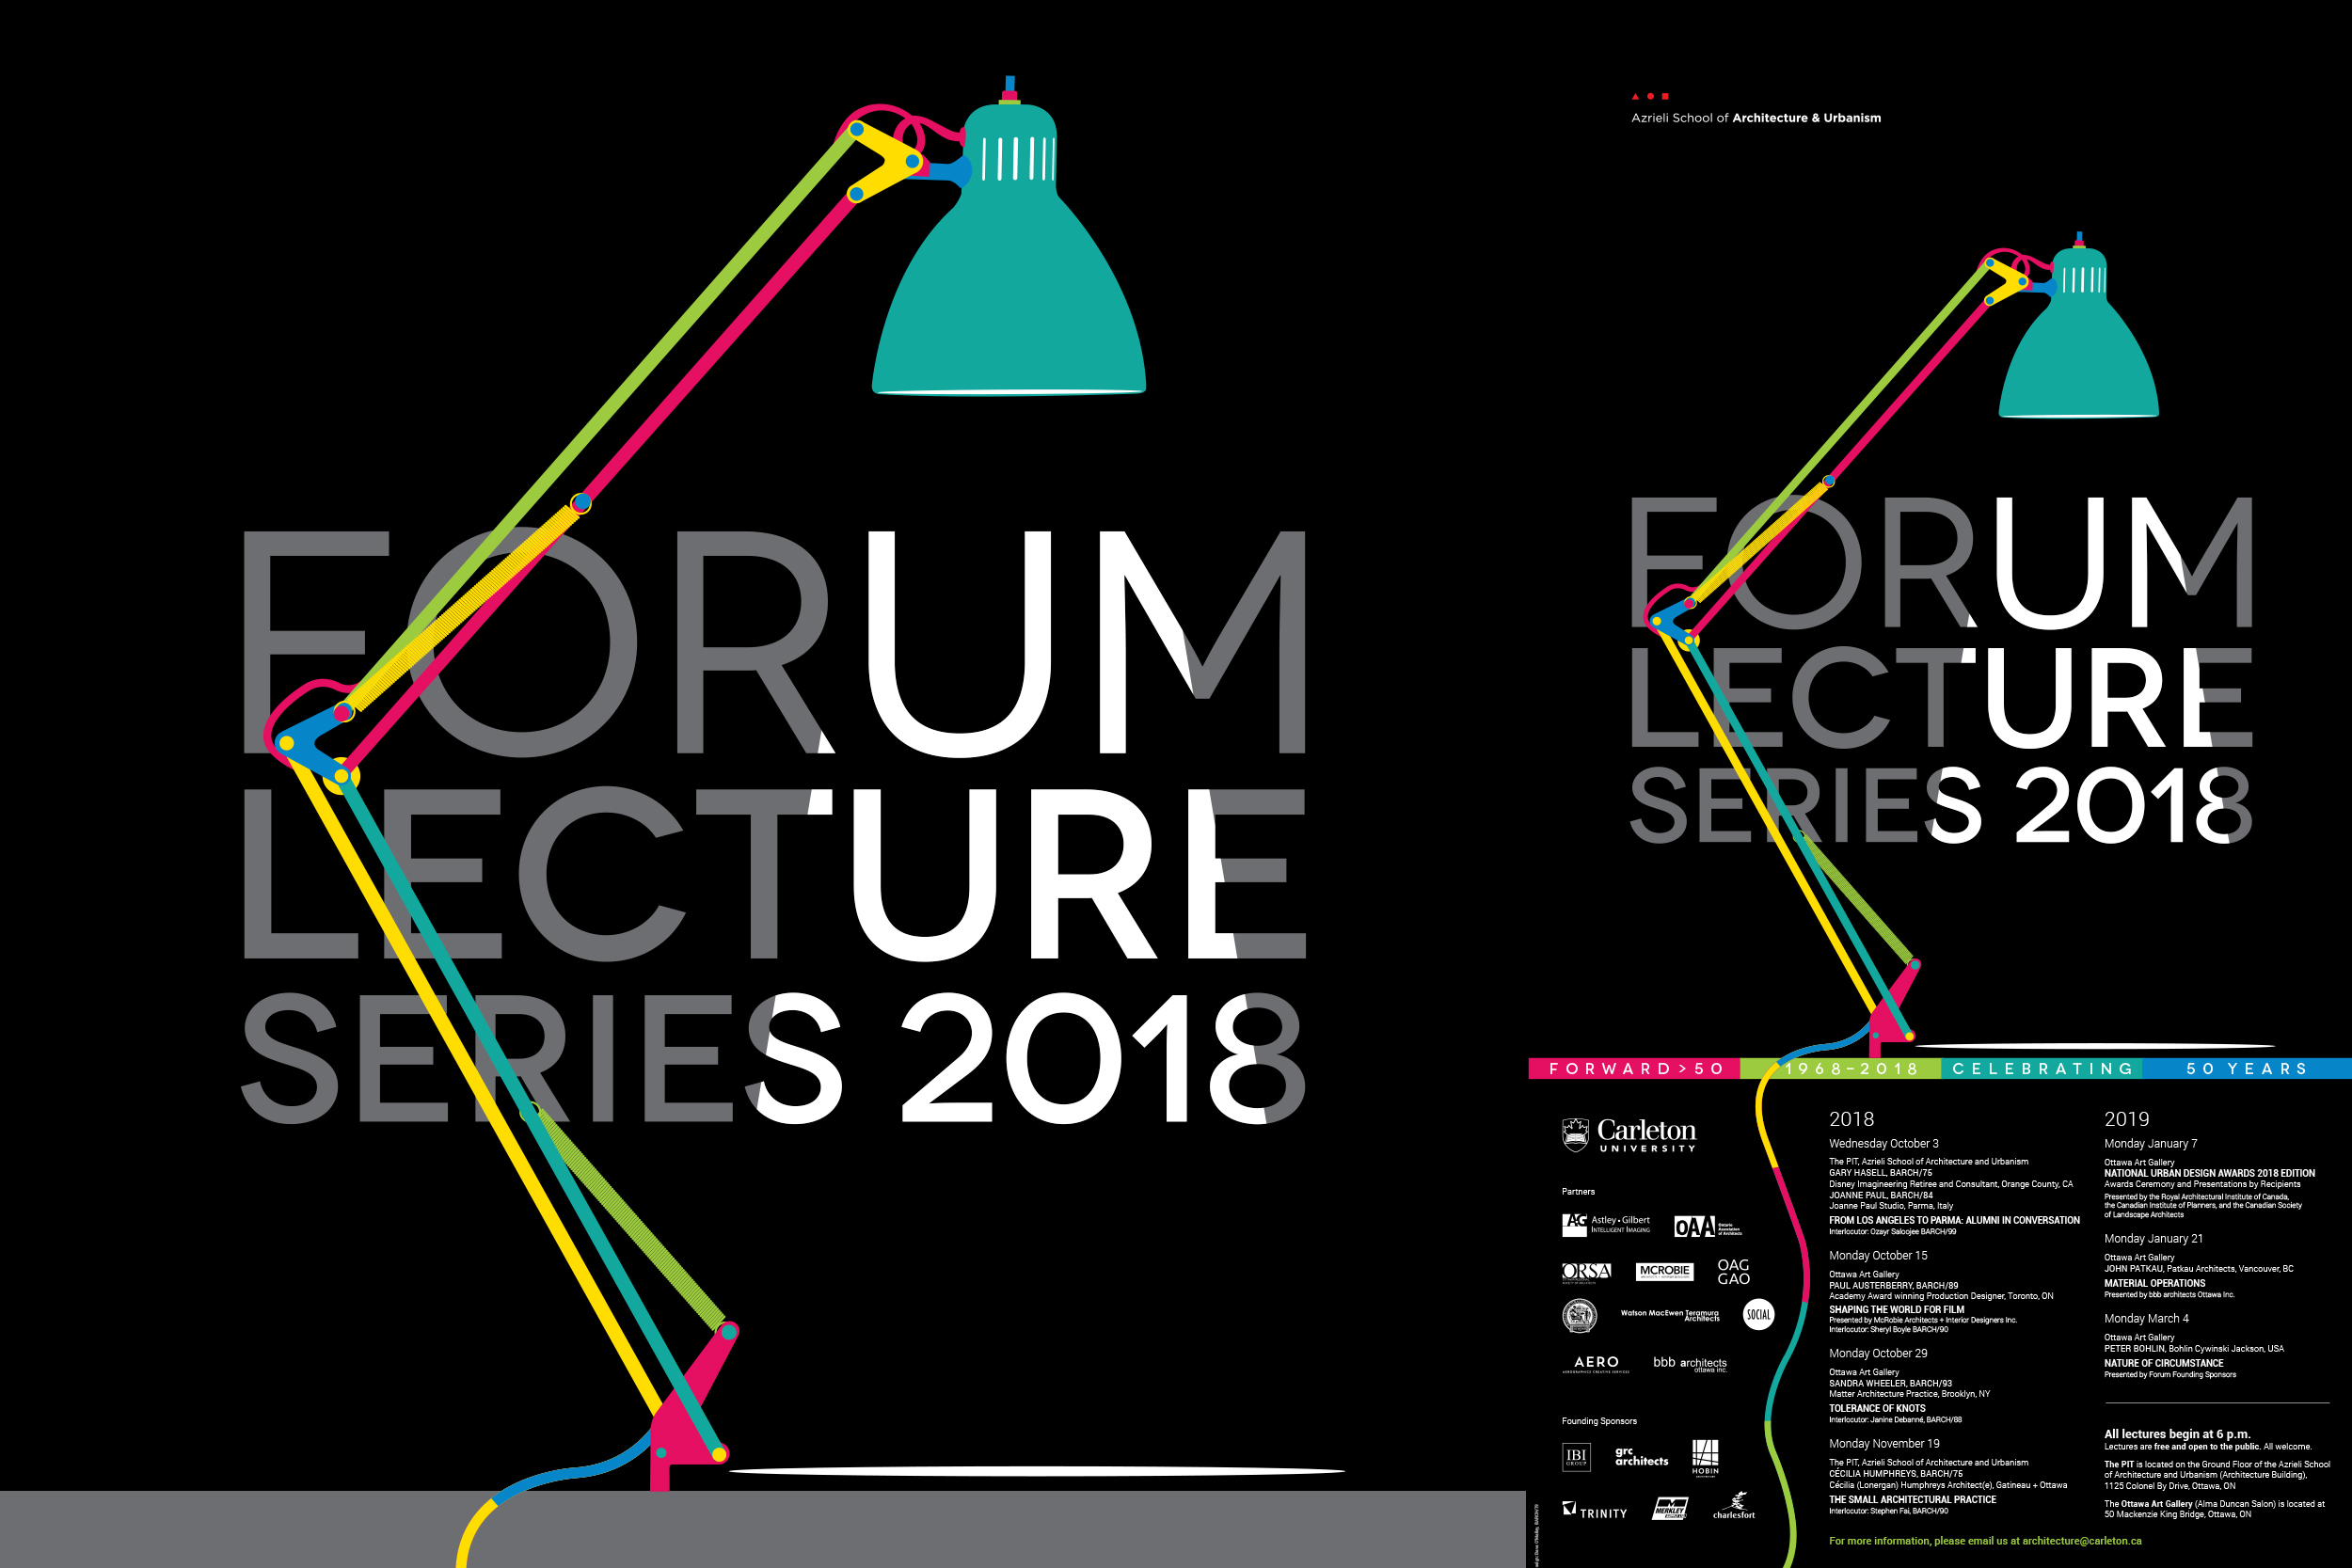 Part of the Forward > 50 celebrations included the annual Forum Lecture Series. Though this series would continue for five months , we brought this separate event into the structure of the celebrations by employing the palette and fonts to depict the classic Luxo task light illuminating new thinking in design and urbanism.